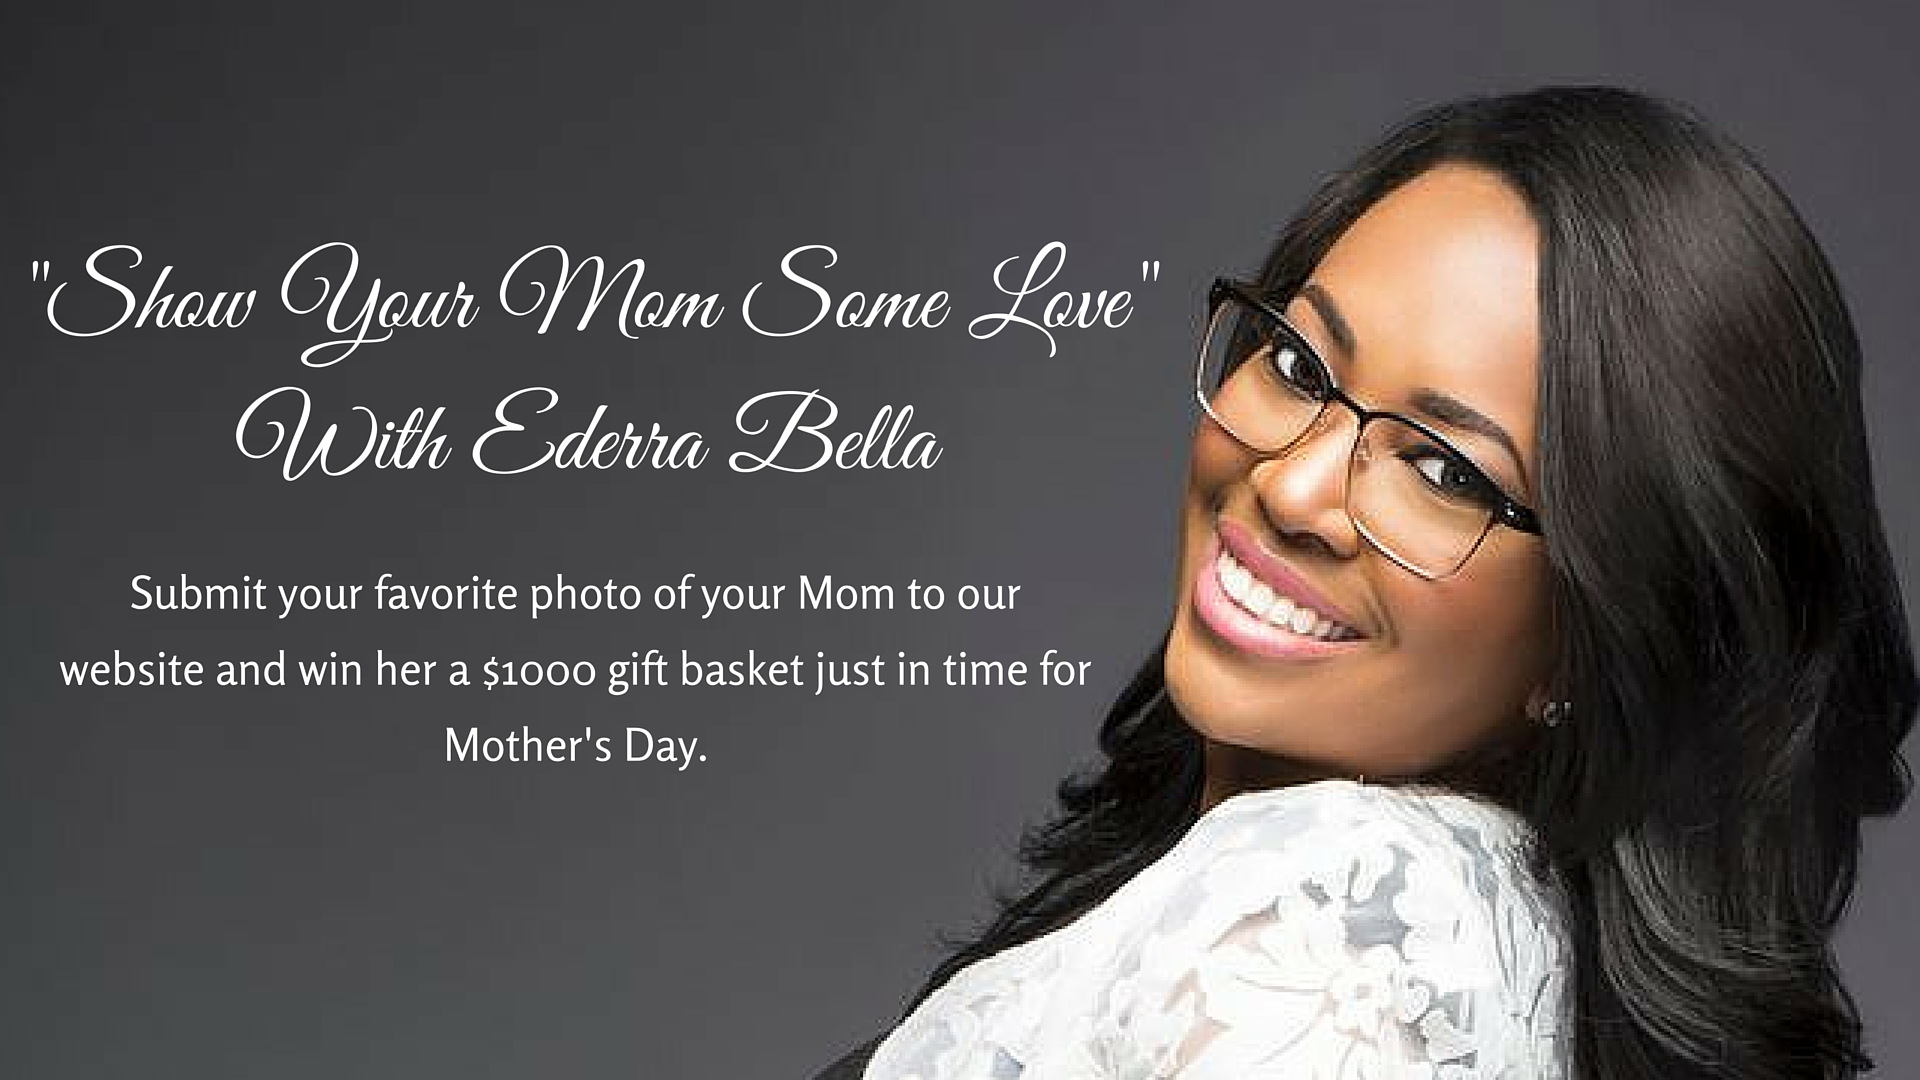 Mother's Day with Ederra Bella